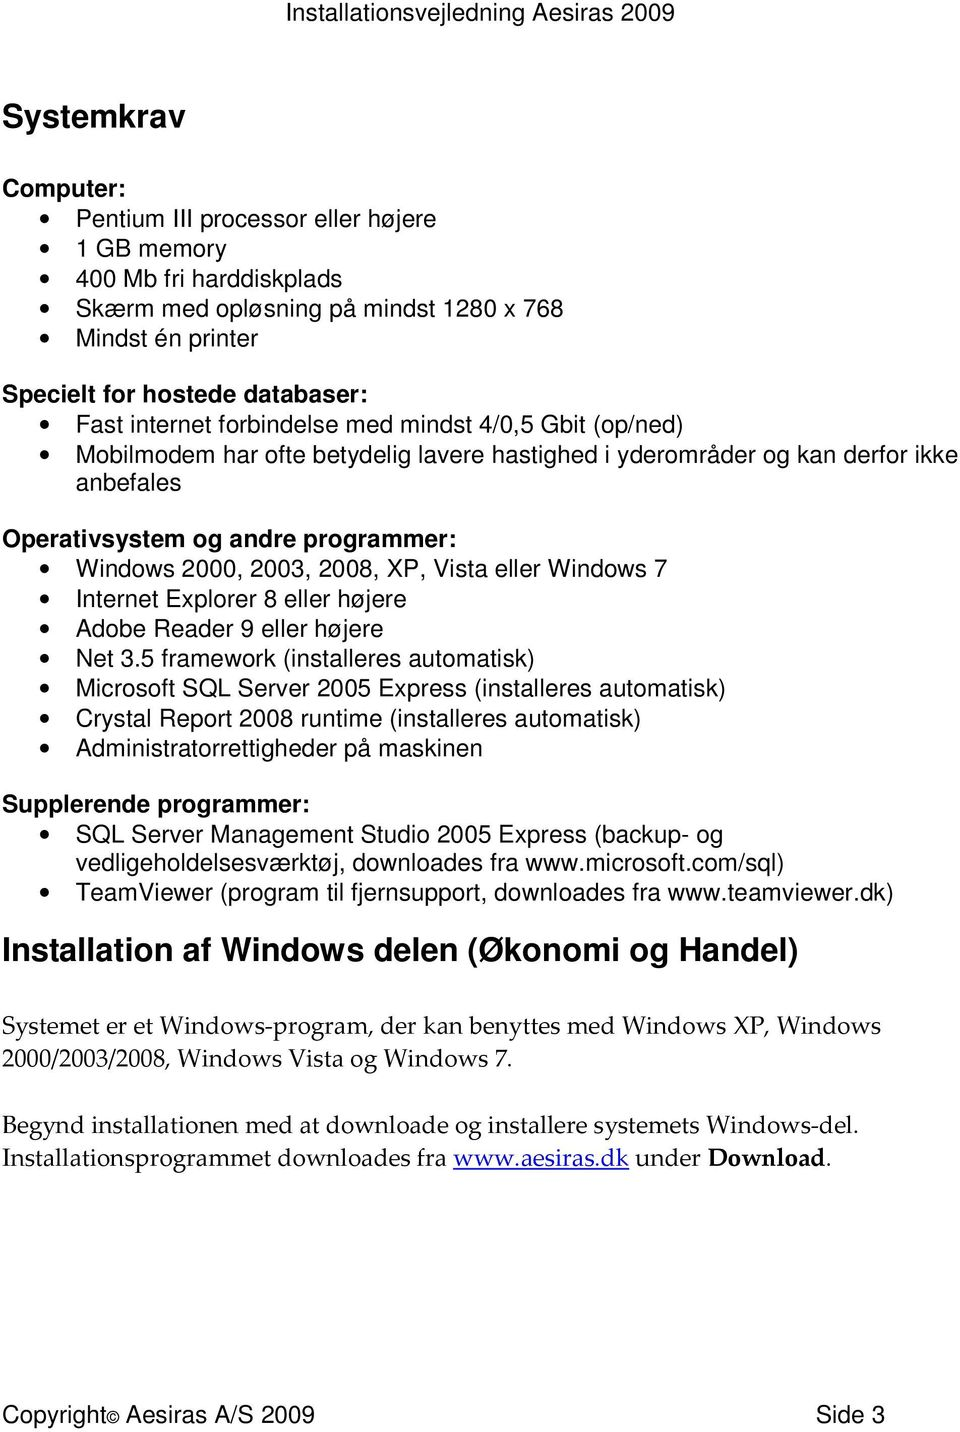 Vista eller Windows 7 Internet Explorer 8 eller højere Adobe Reader 9 eller højere Net 3.